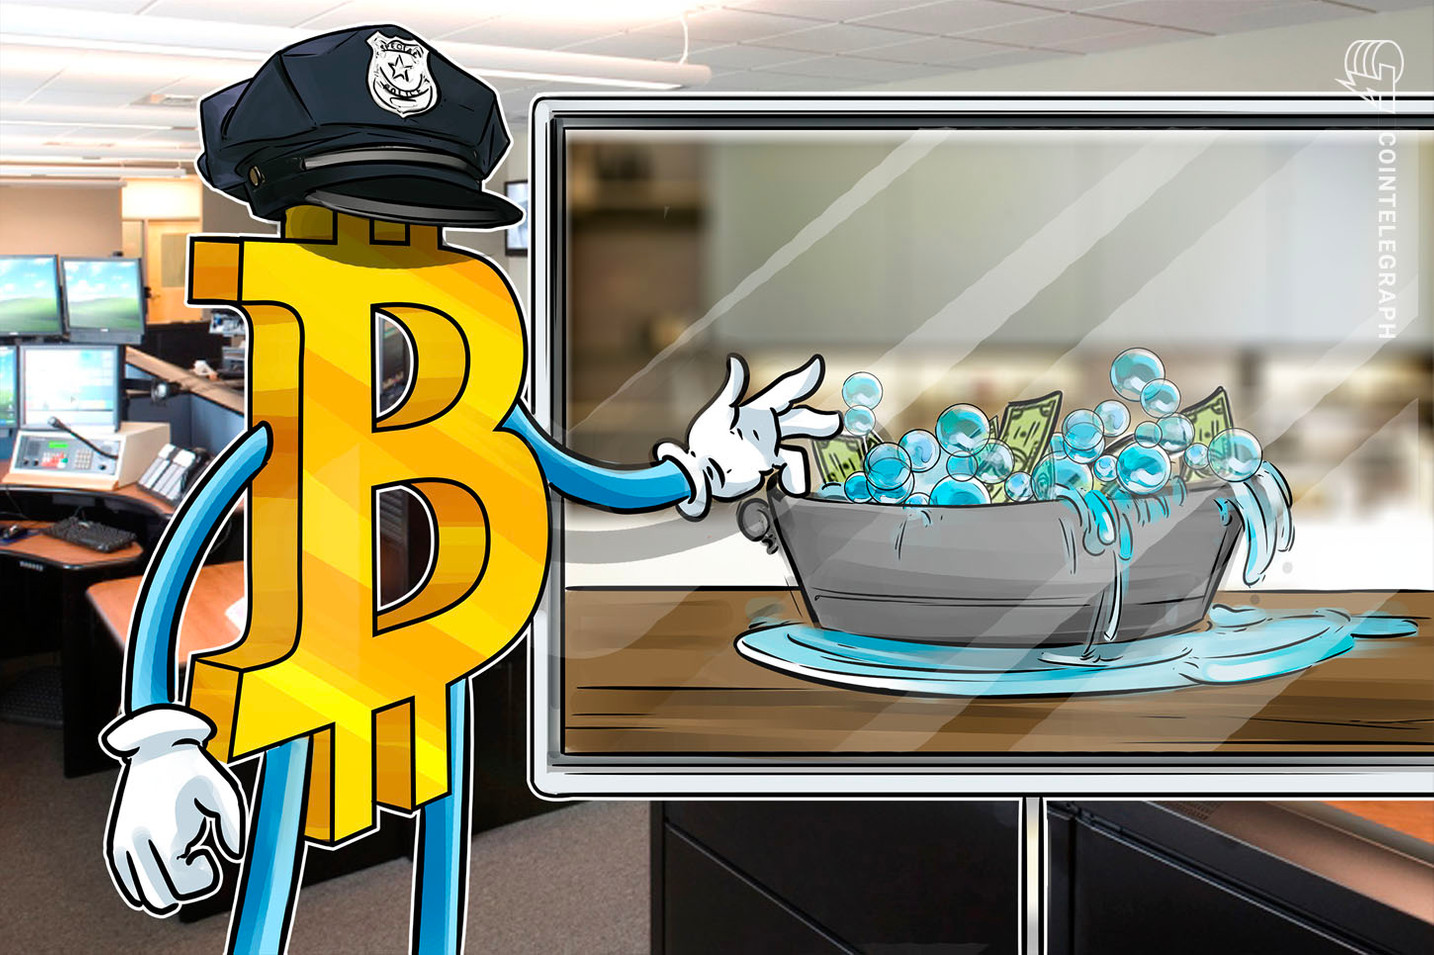 LocalBitcoins Seller Charged After Undercover 'Human Trafficking' Sting